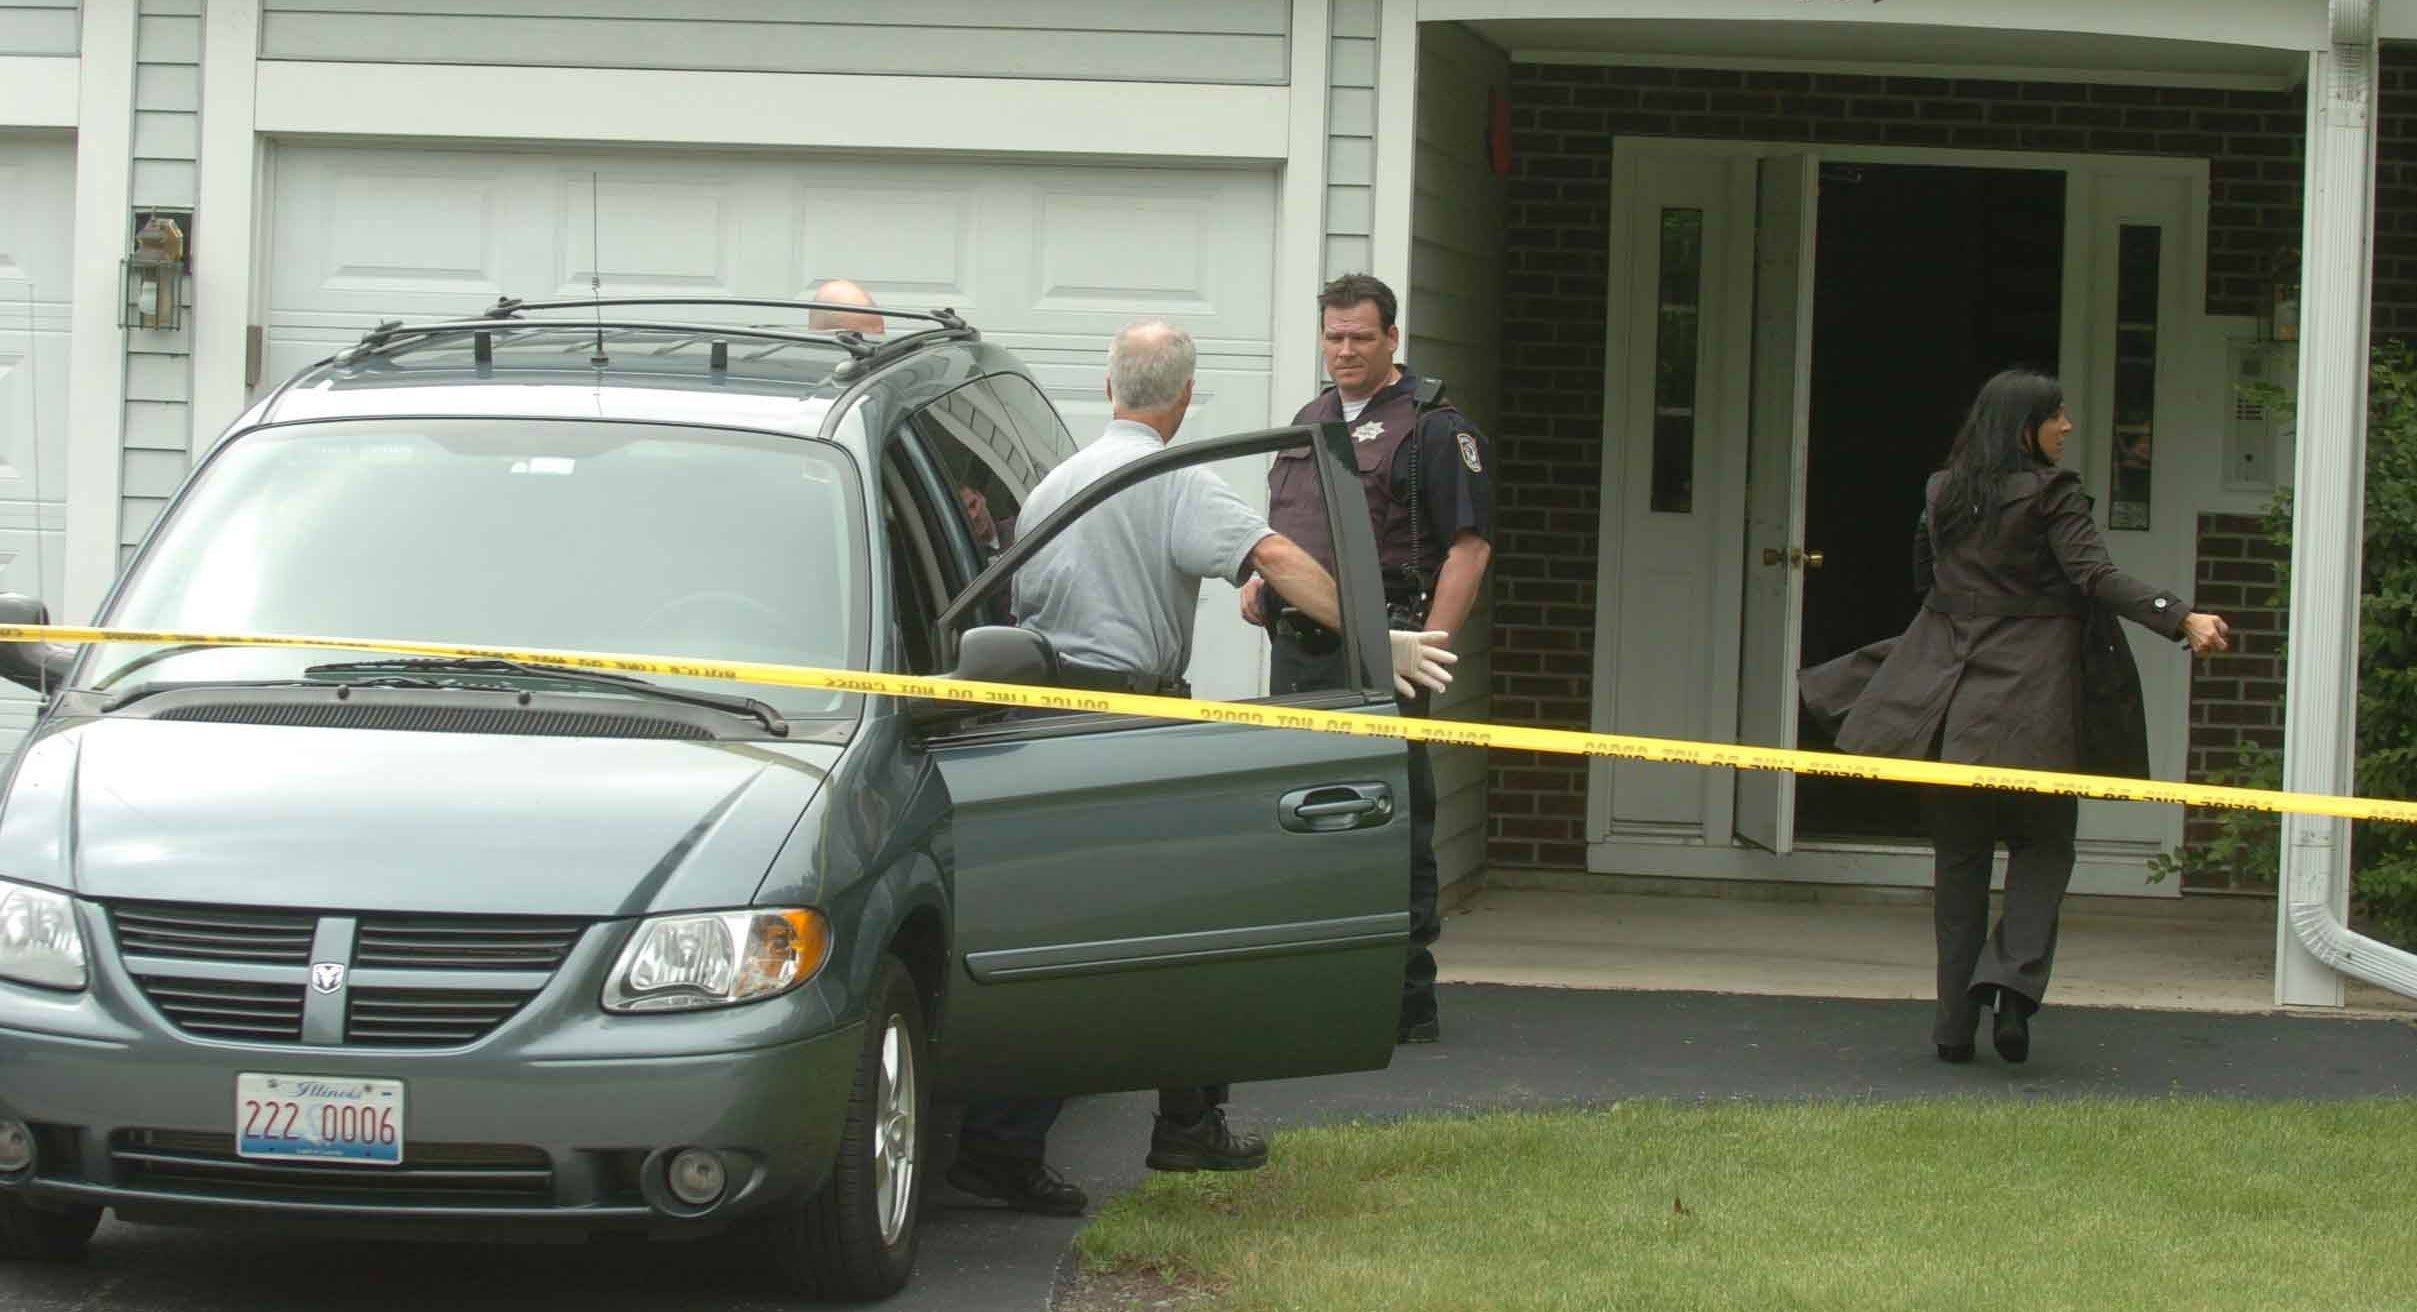 Naperville police are hunting for the killer of a 59-year-old woman whose body was found Wednesday in a townhouse on the 2300 block of Worthing Drive.